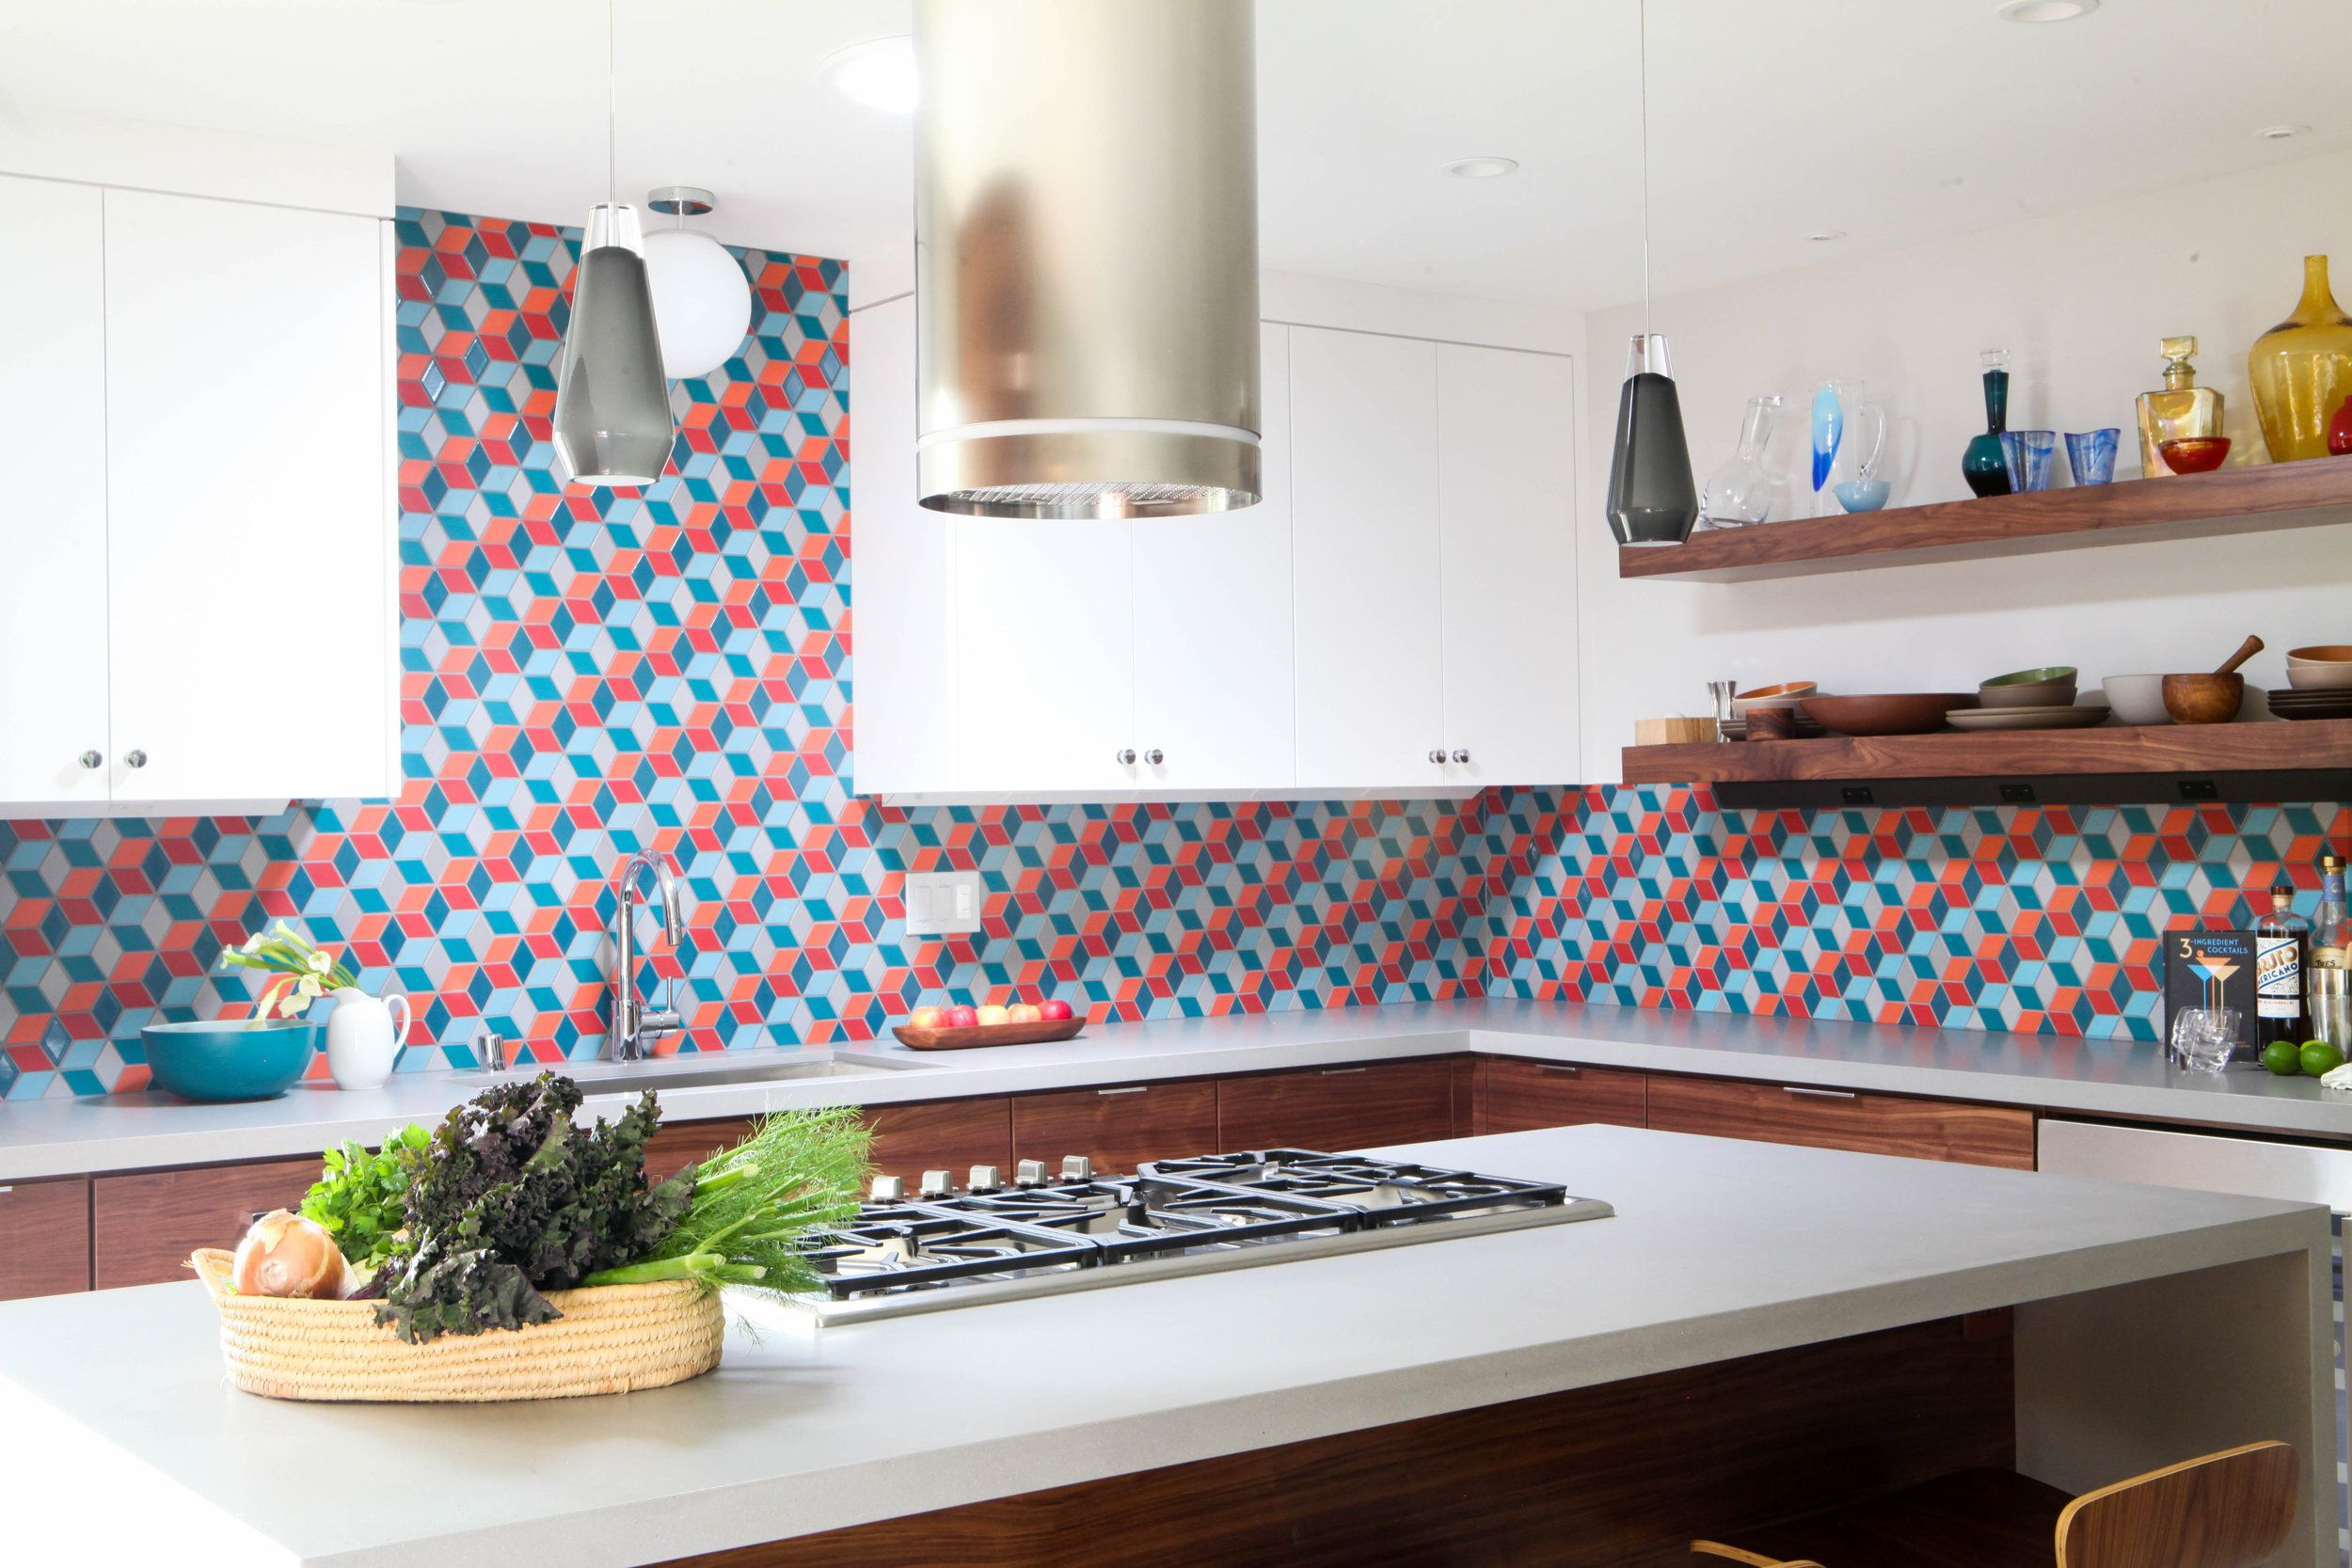 Colorful Heath Ceramics Tile In A Midcentury Modern Kitchen